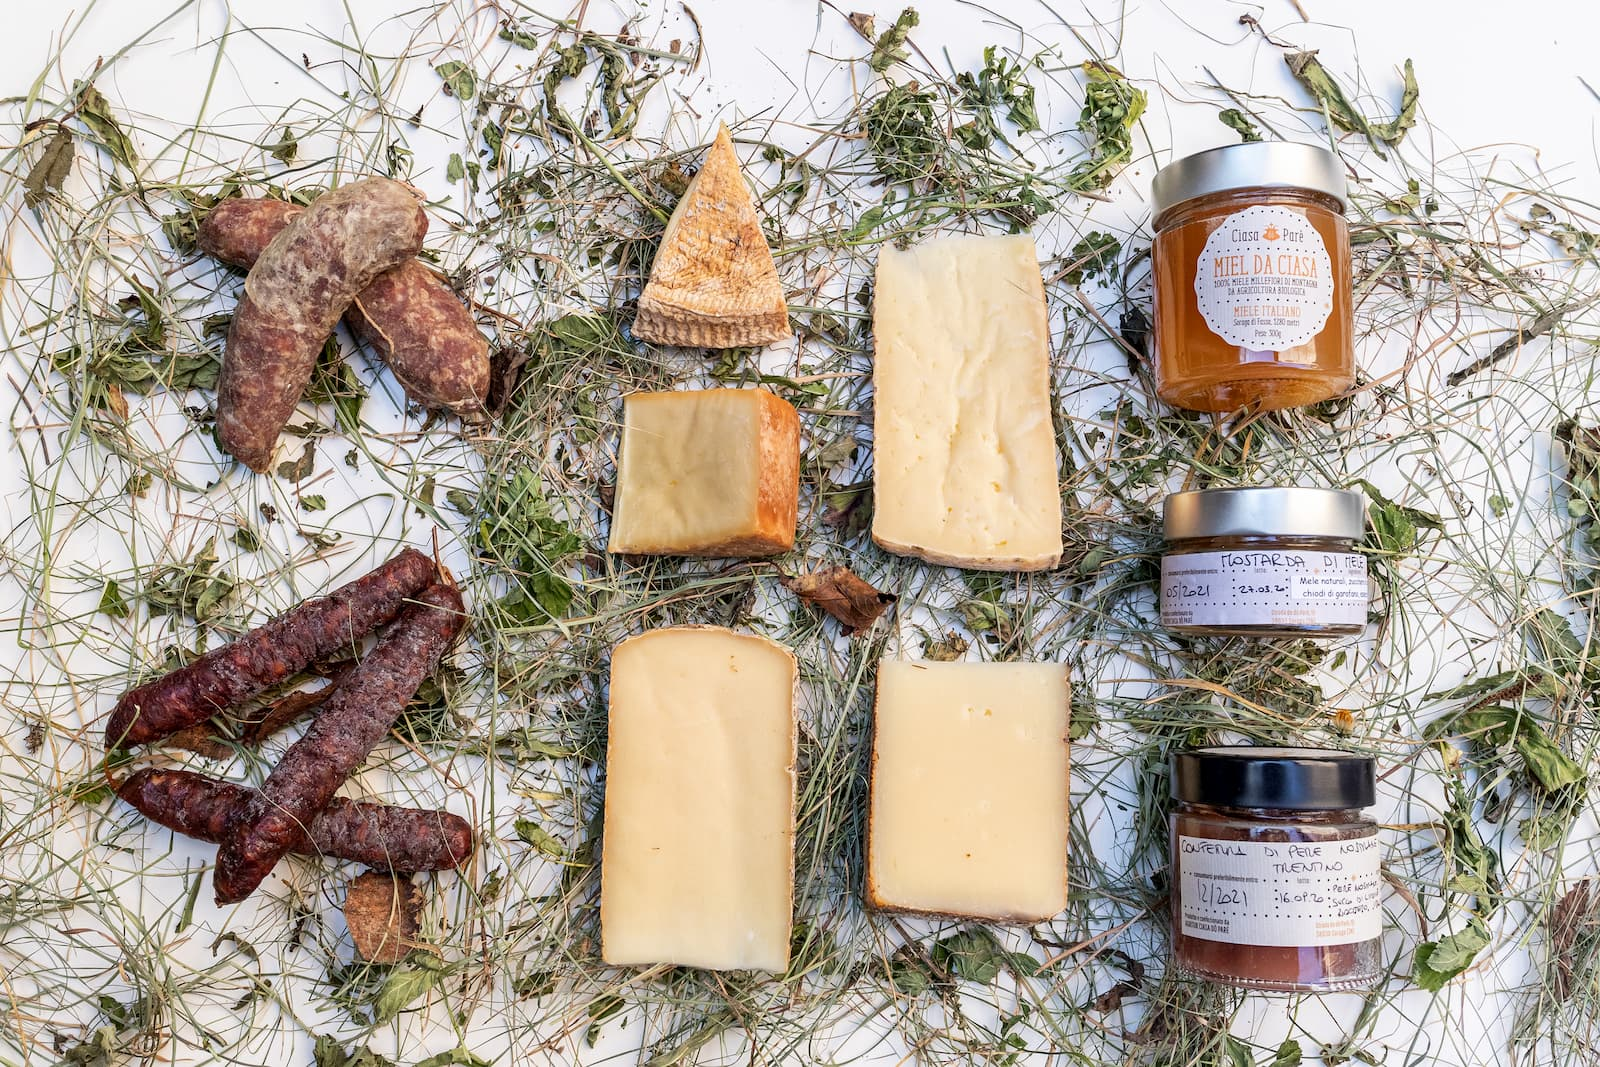 Christmas Box Gift Organic Cheese and Honey from Val di Fassa